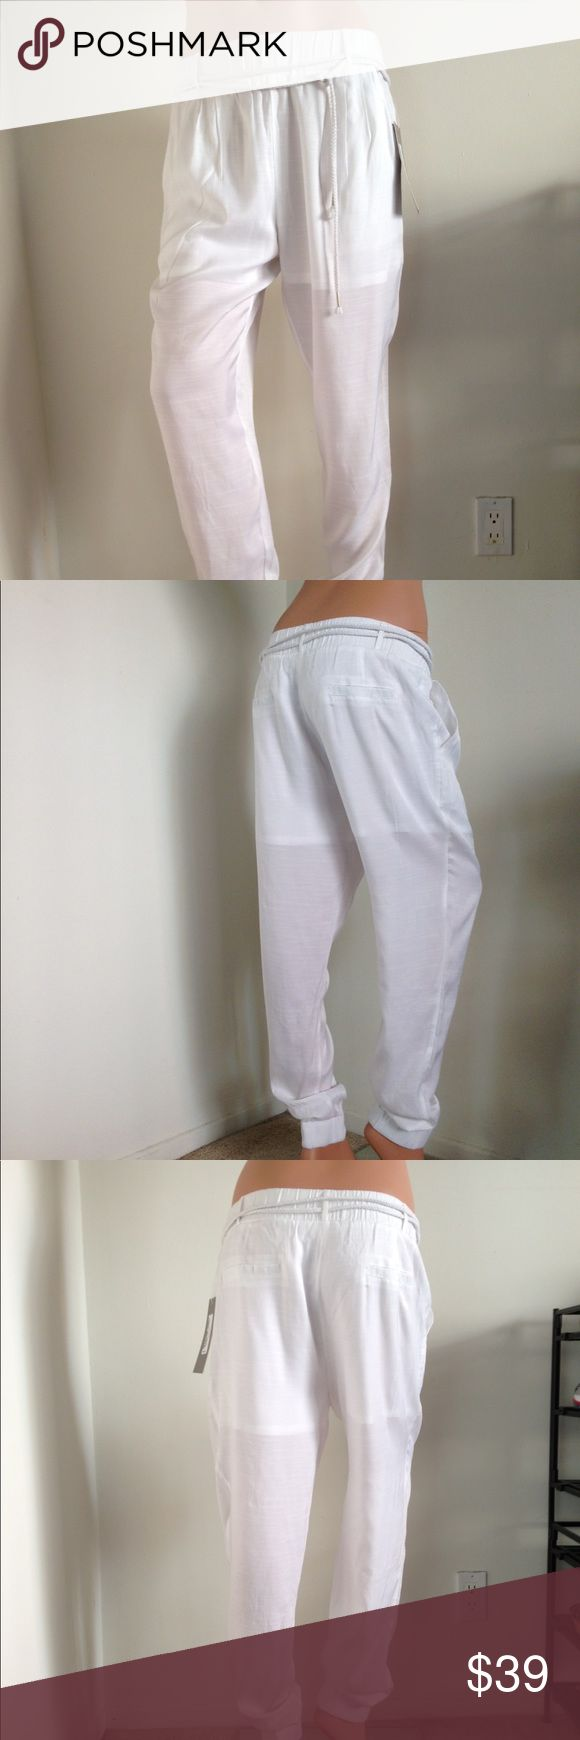 "White jogger pants size small Brand: Love and Love Front pockets. Embedded shorts as lining. Pants feature wide elastic banding at cuffs and waist.  Fabric: Polyester/Spandex/Rayon (doesn't stretch) Color: White  Size Small Length: 39"" Inseam: 27"" Waist: 28"" Hips: 36"" Love and Love Pants"